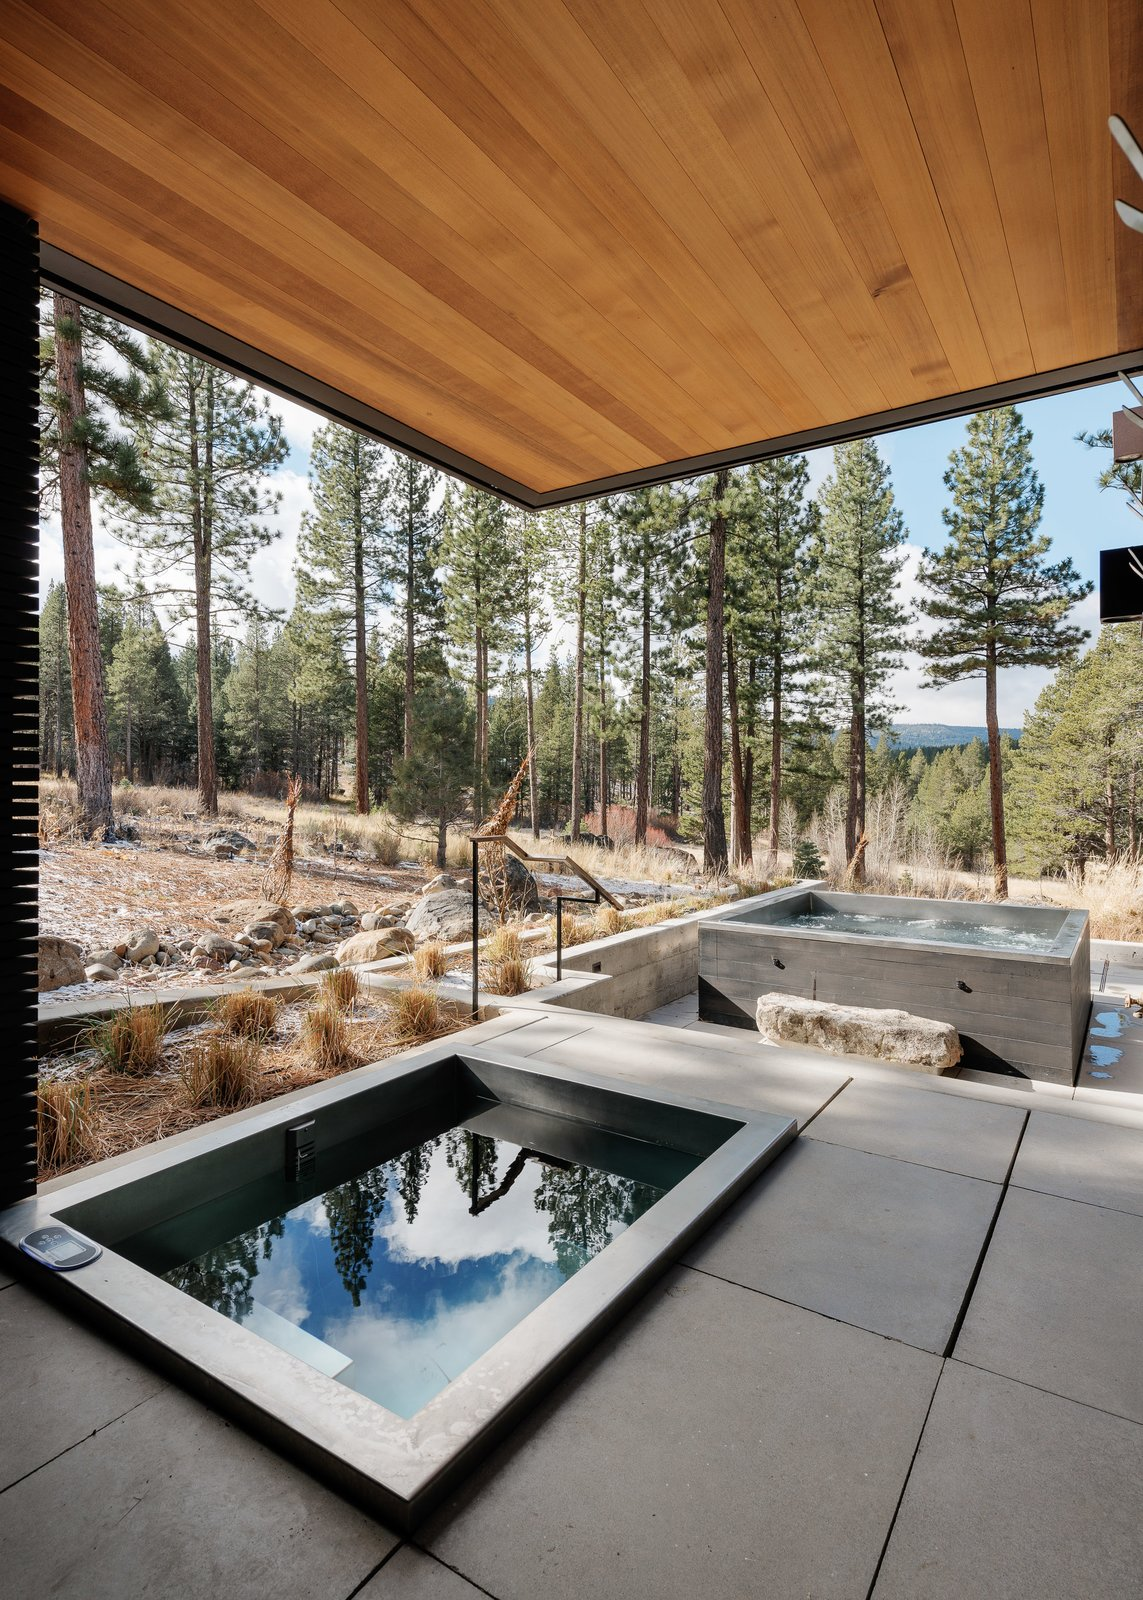 Outdoor Spa Tagged: Outdoor, Back Yard, Gardens, Flowers, Raised Planters, Boulders, Large Patio, Porch, Deck, Small Pool, and Concrete Patio, Porch, Deck. Martis Camp Residence 1 by John Maniscalco Architecture